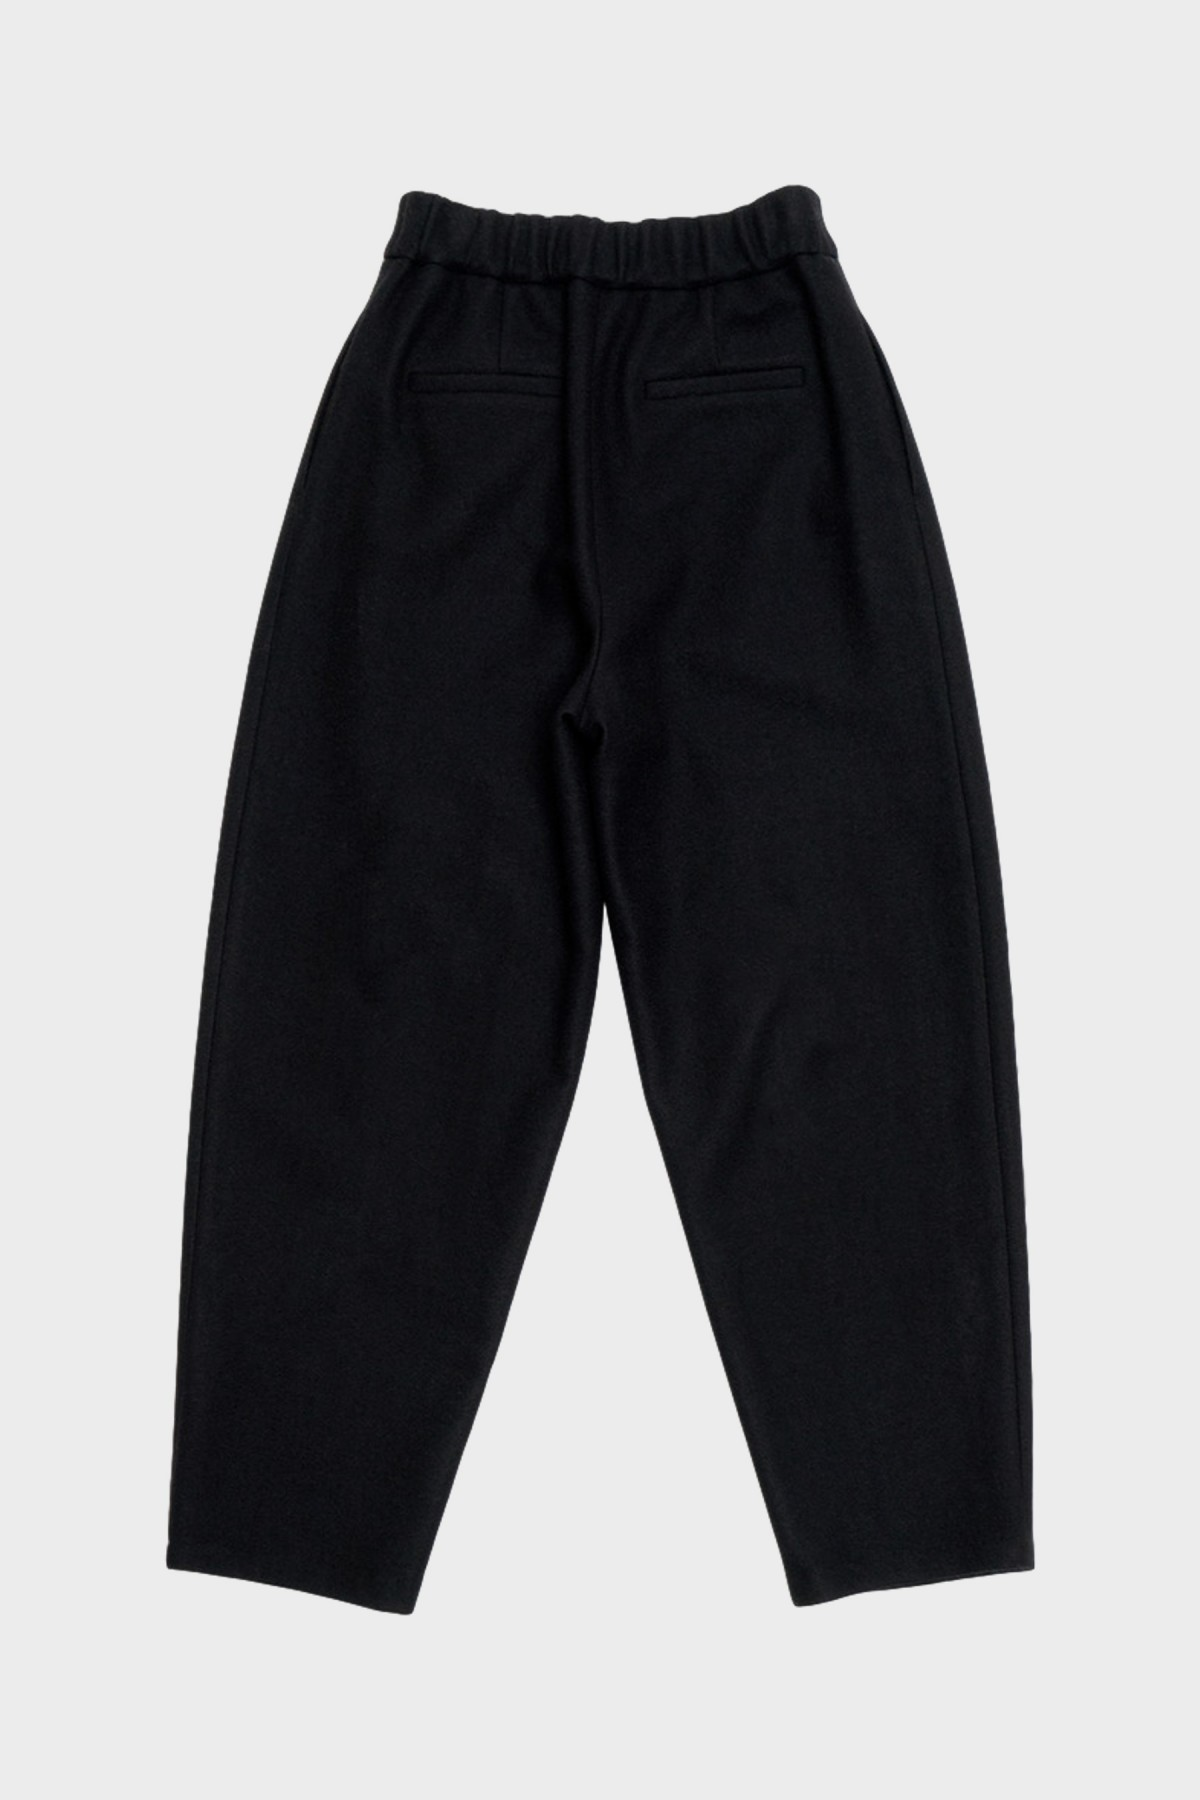 Amomento Garconne Pants in Black